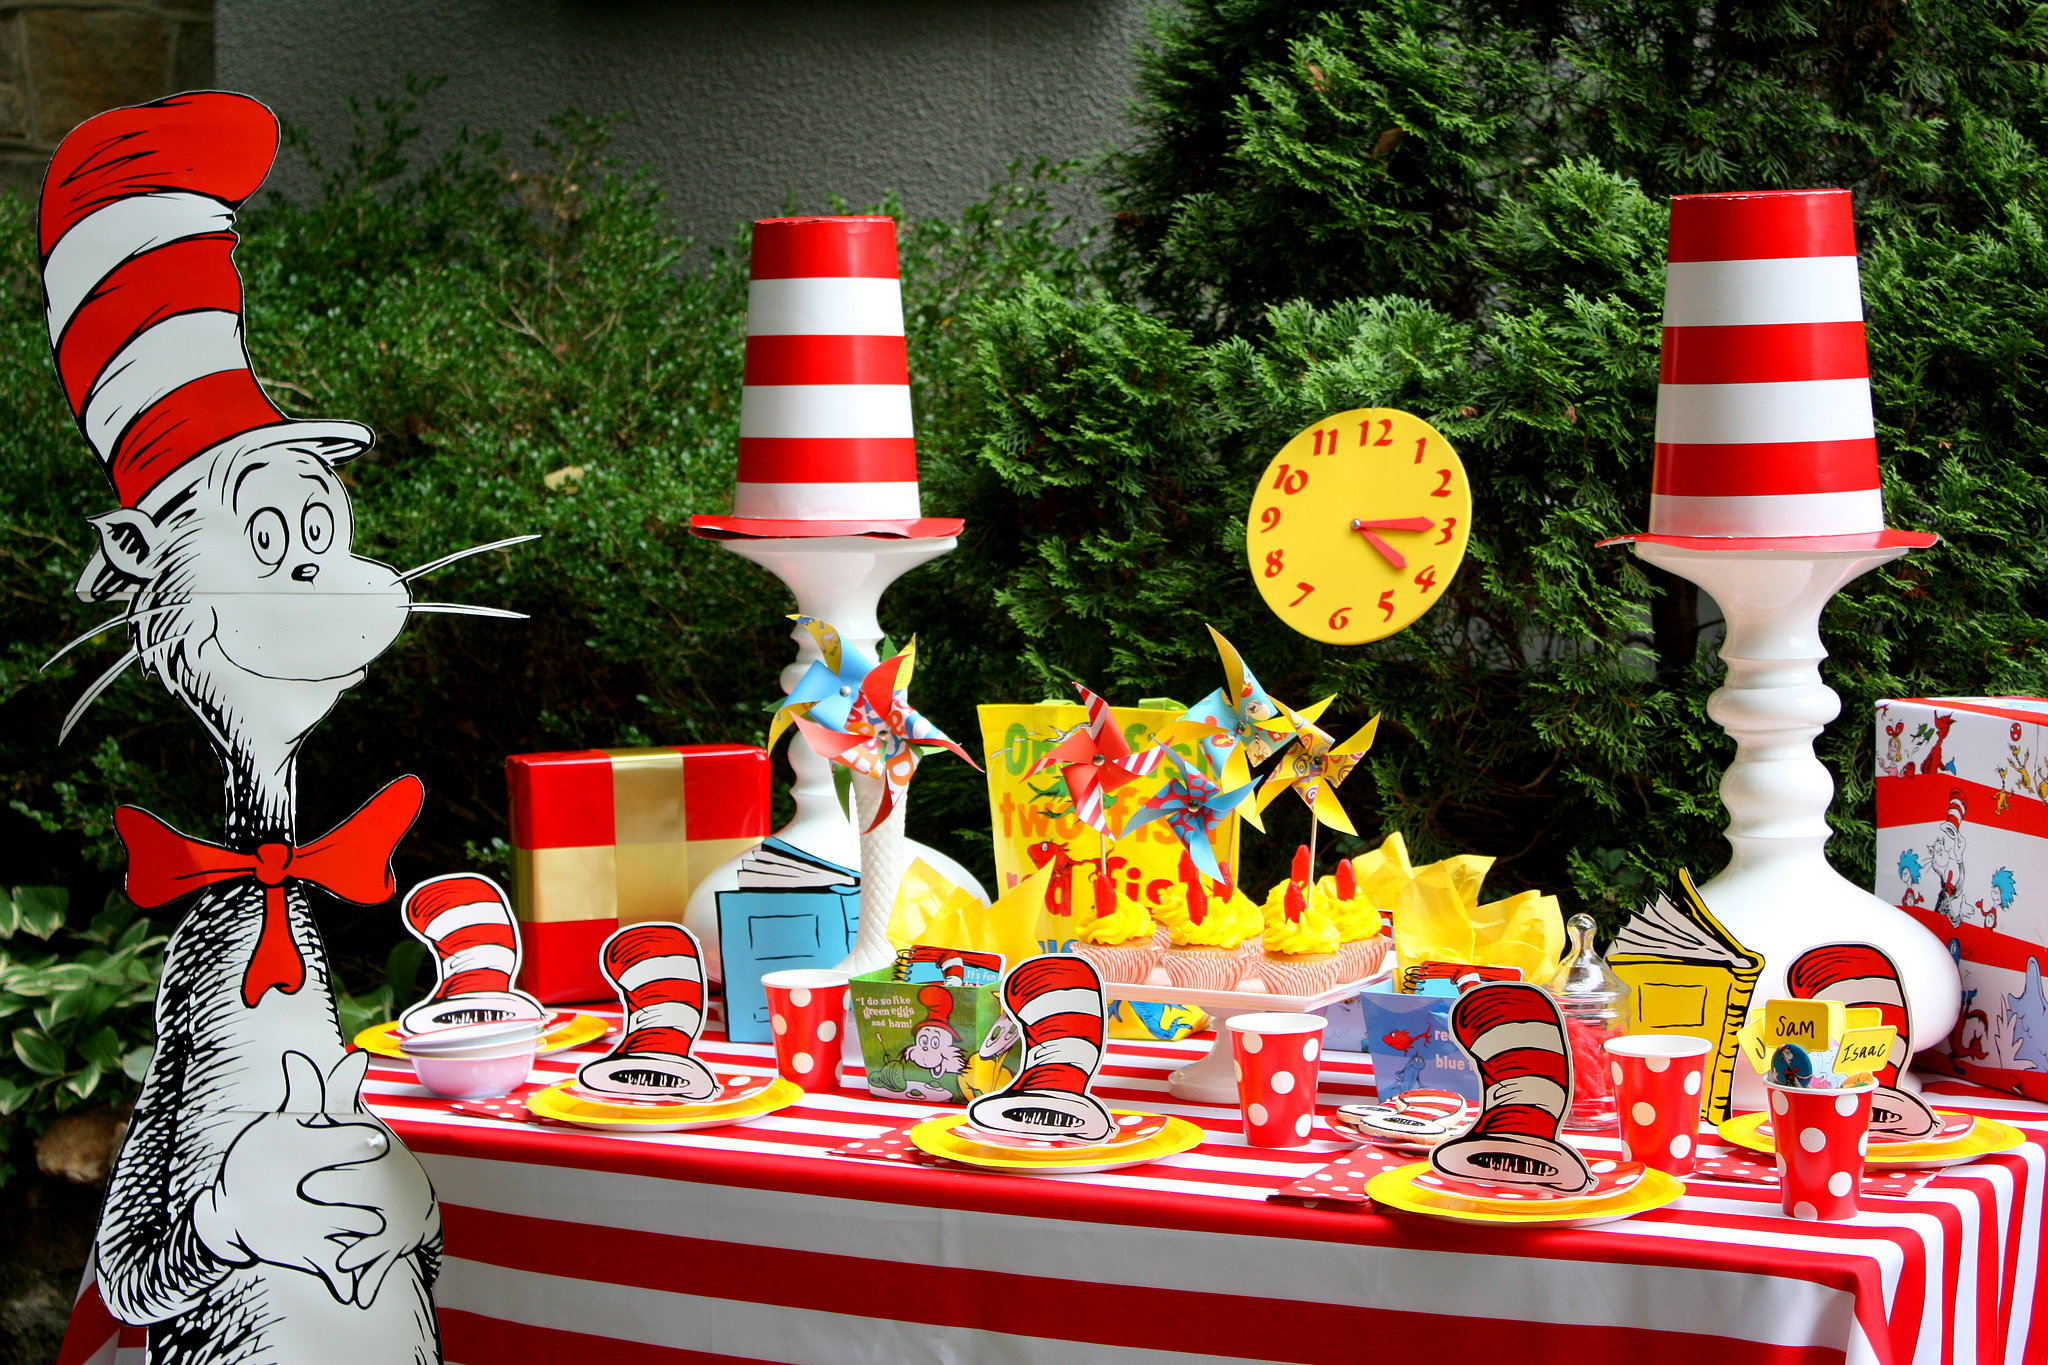 Dr Seuss Birthday Party Ideas FREE Printables Savvy Nana